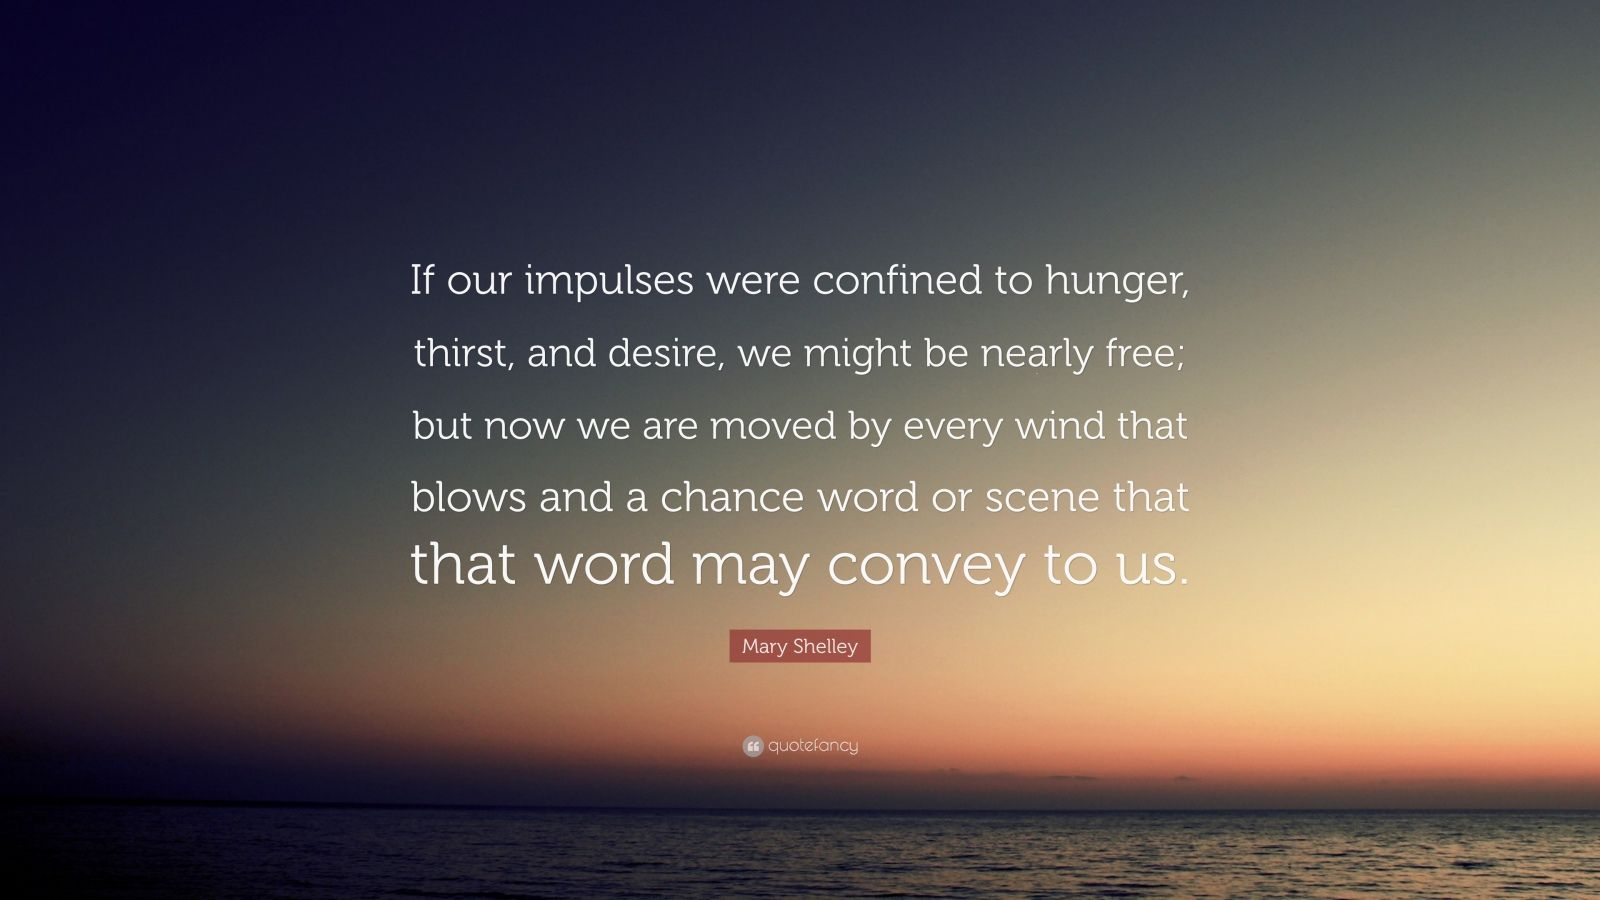 "Mary Shelley Quote: ""If our impulses were confined to hunger, thirst, and desire, we might be nearly free; but now we are moved by every wind that blows and a chance word or scene that that word may convey to us."""